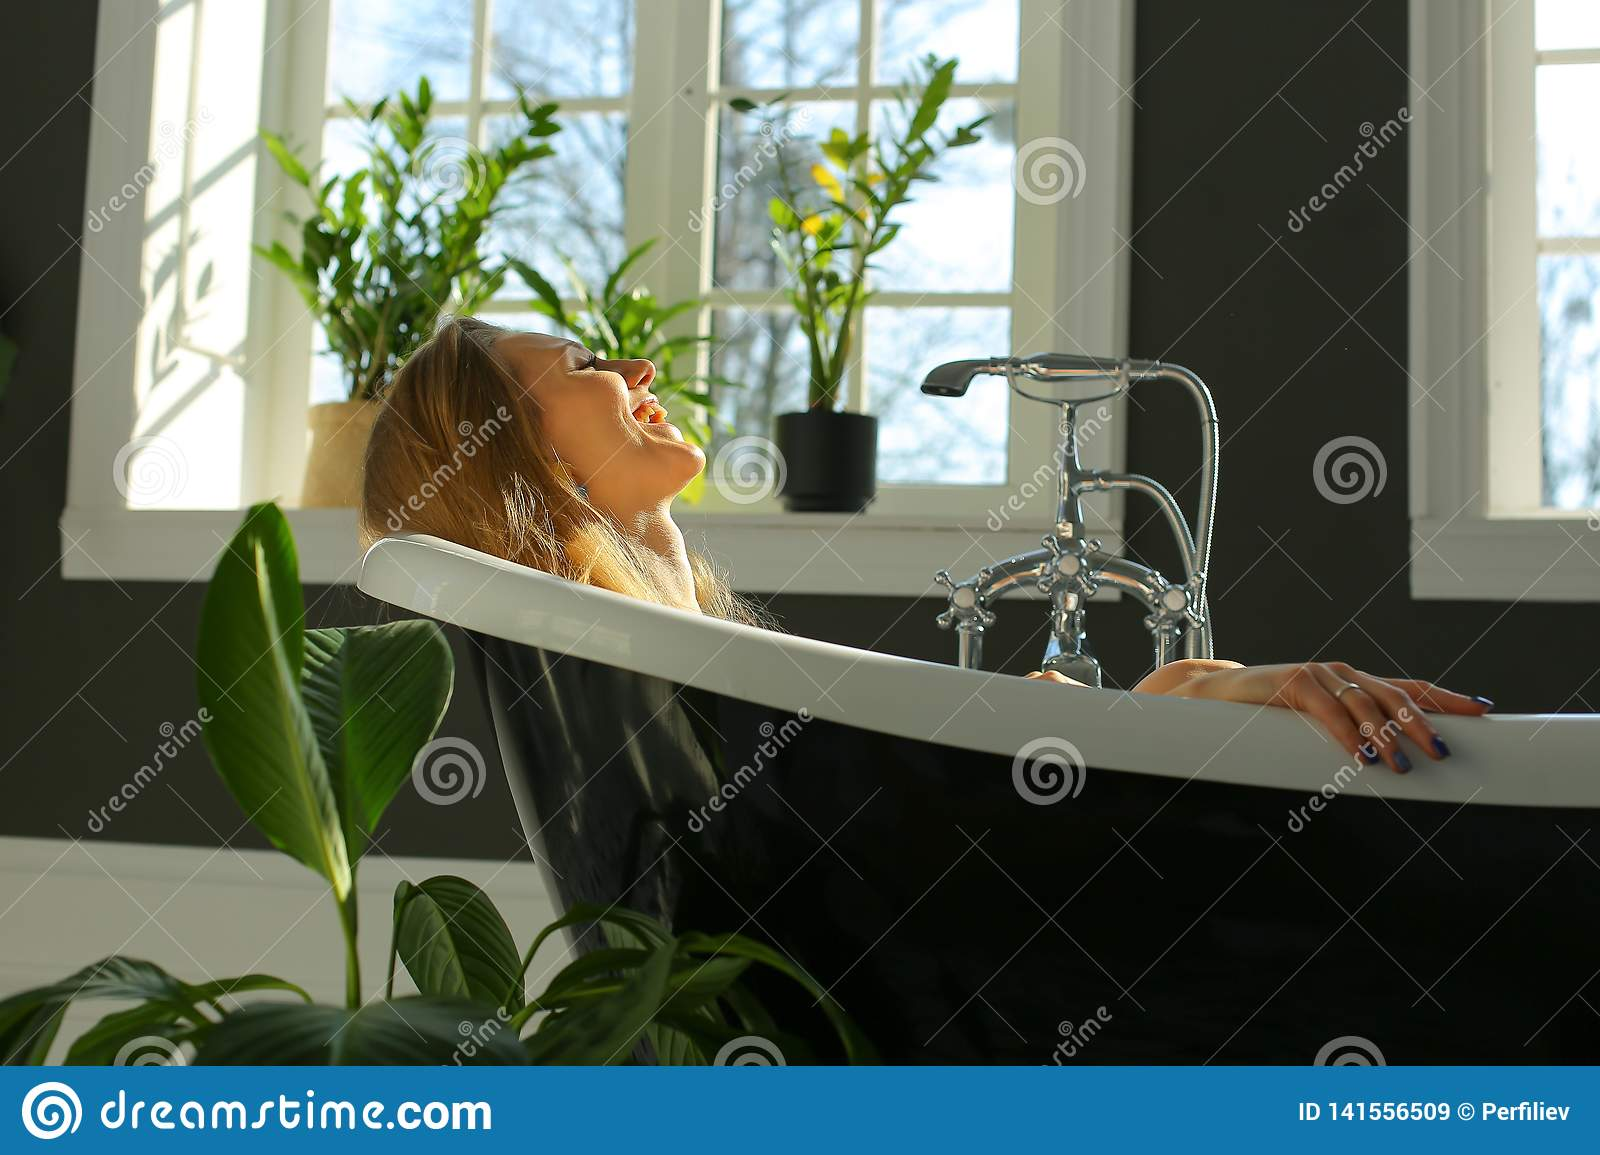 Smiling woman is relaxing in bath